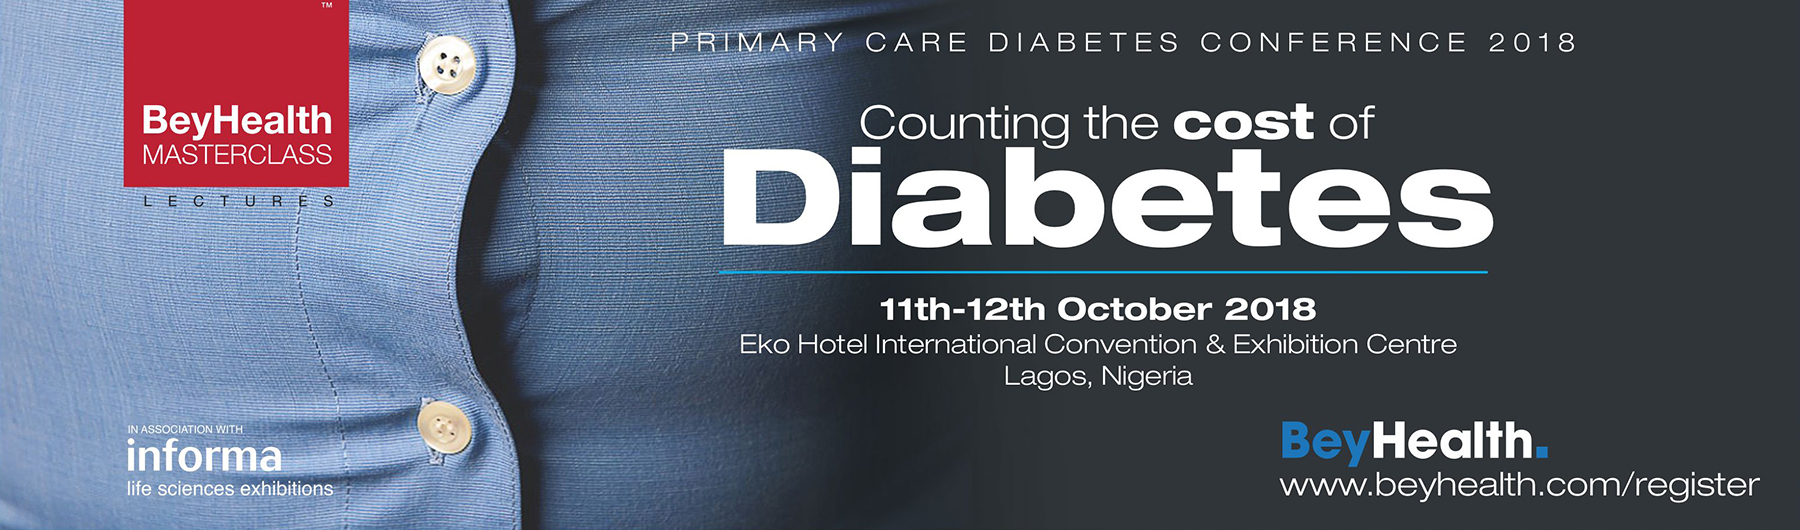 Counting the Cost of Diabetes